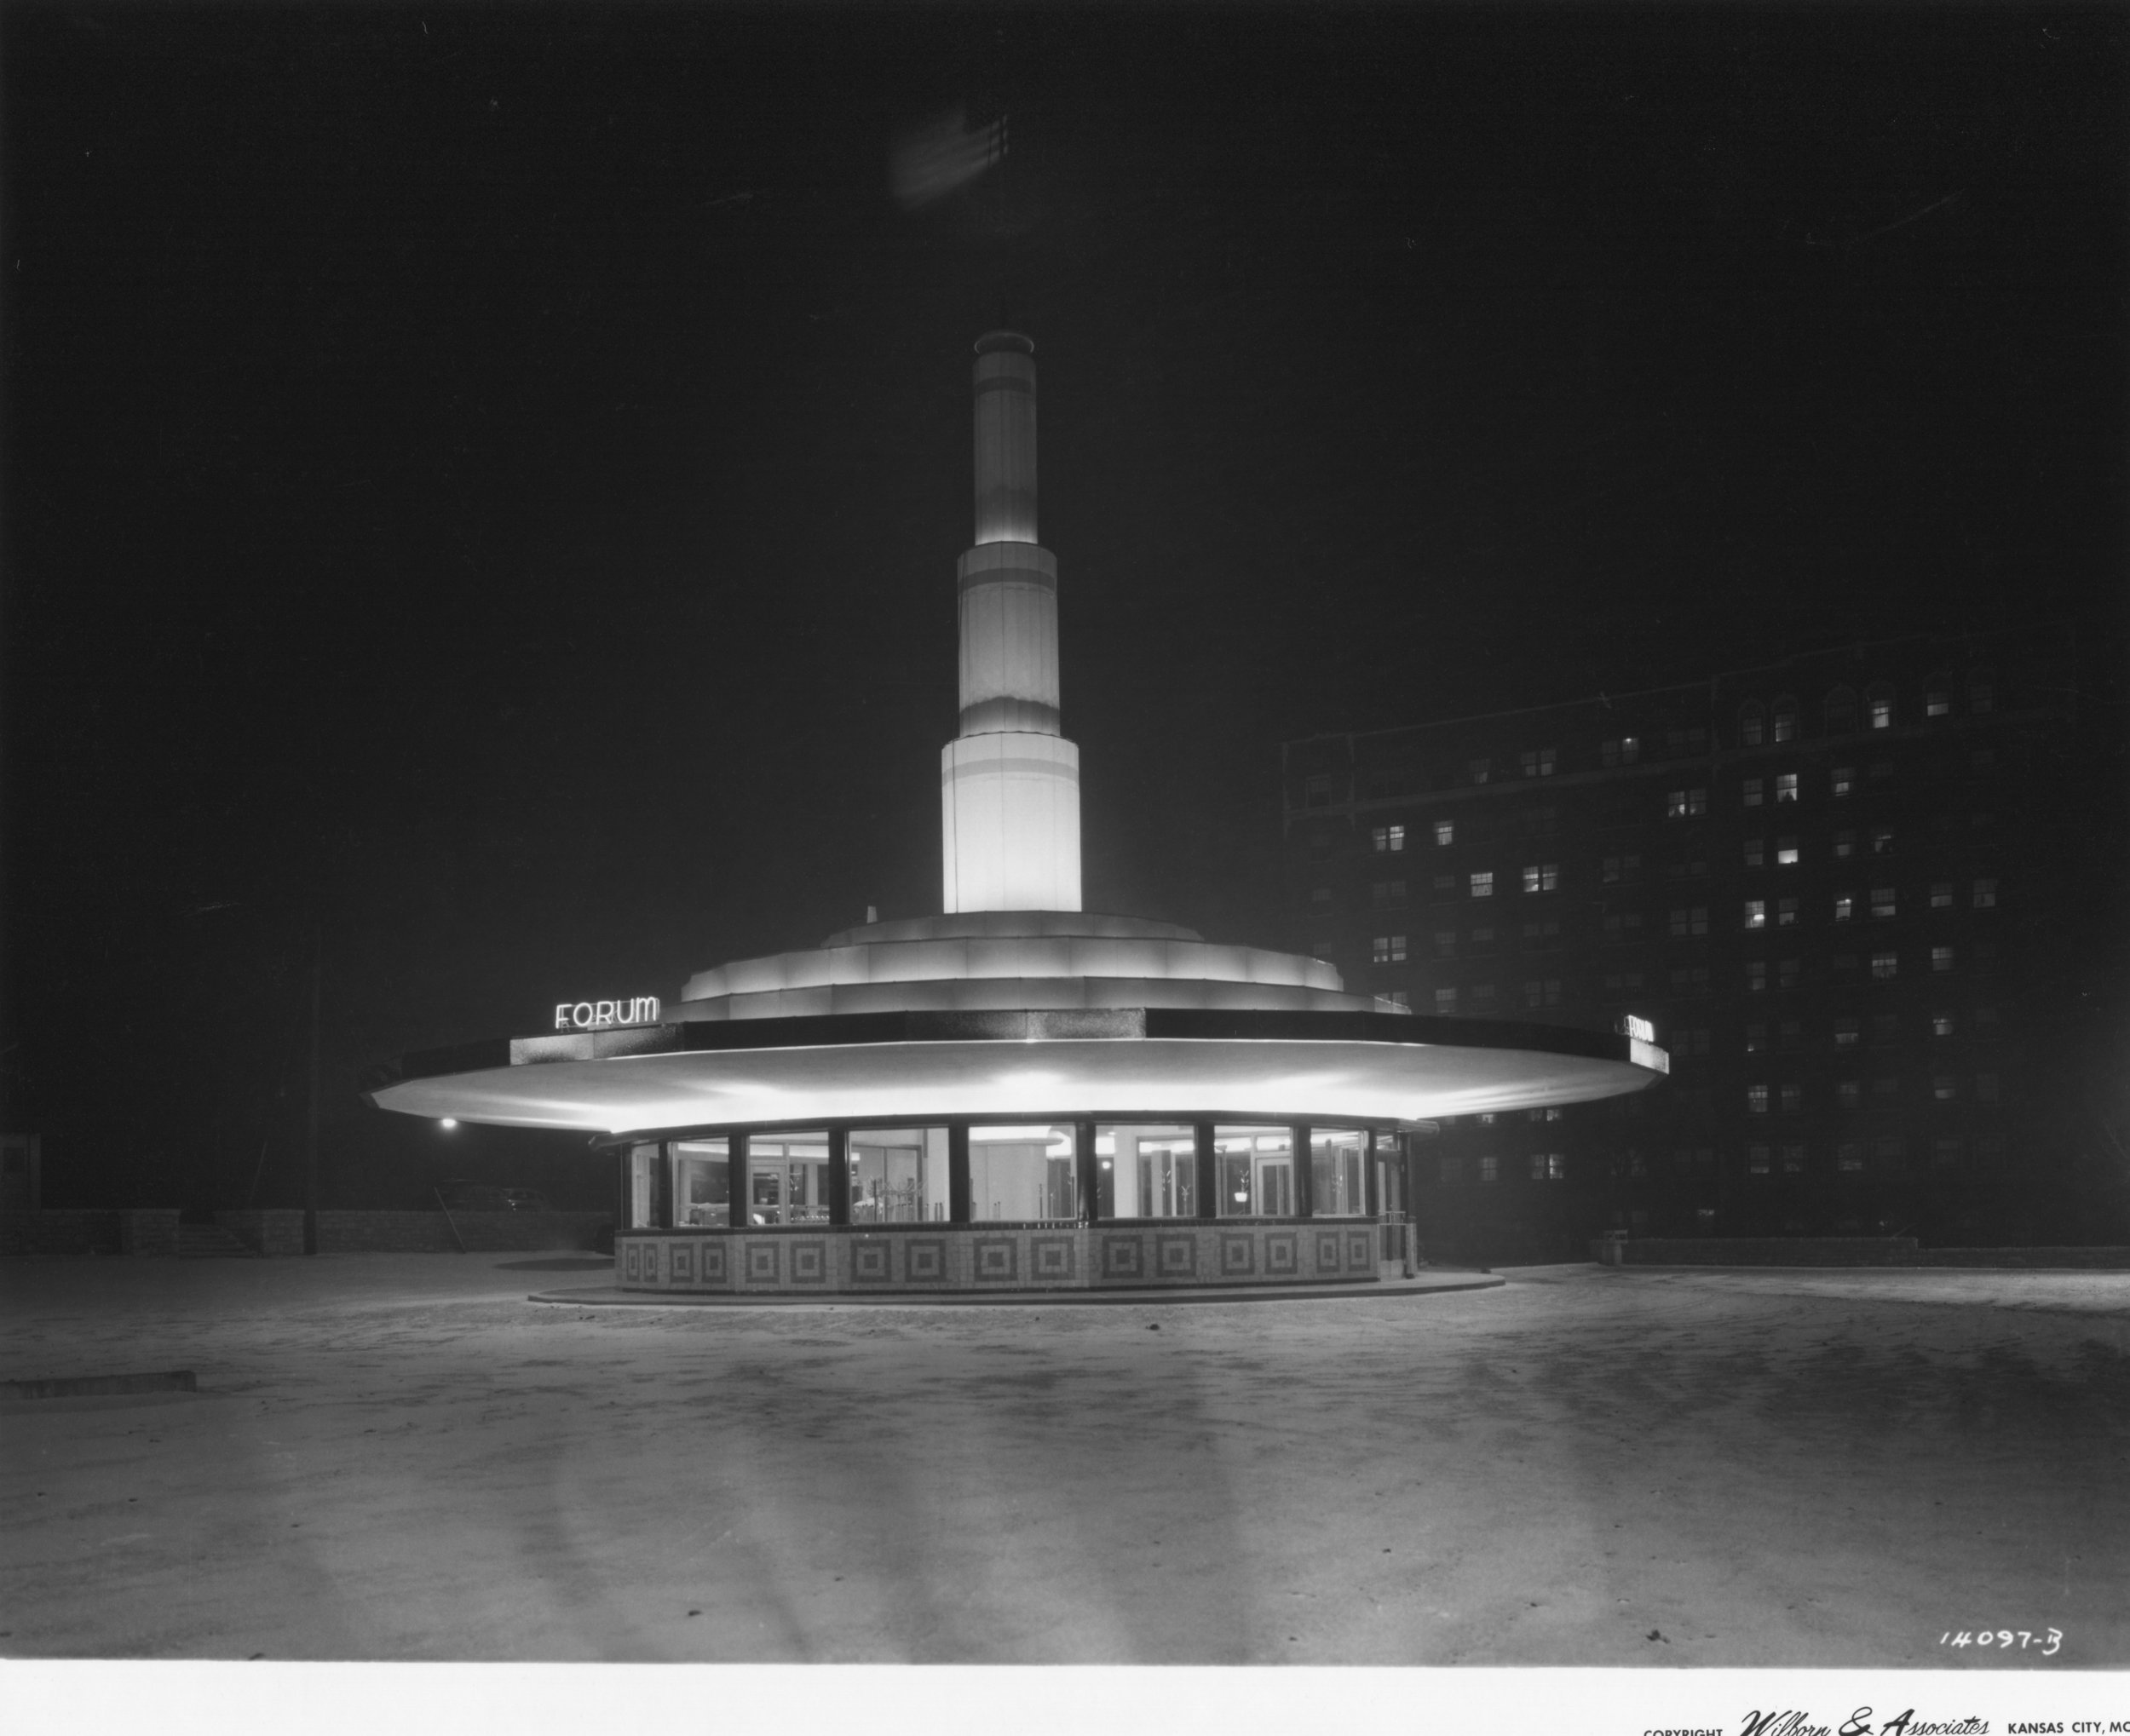 Wilborn Collection Forum Drive In Restraurant February 23 1942  night view 48th Street and Main on C. C. Plaza 14097-B.jpg